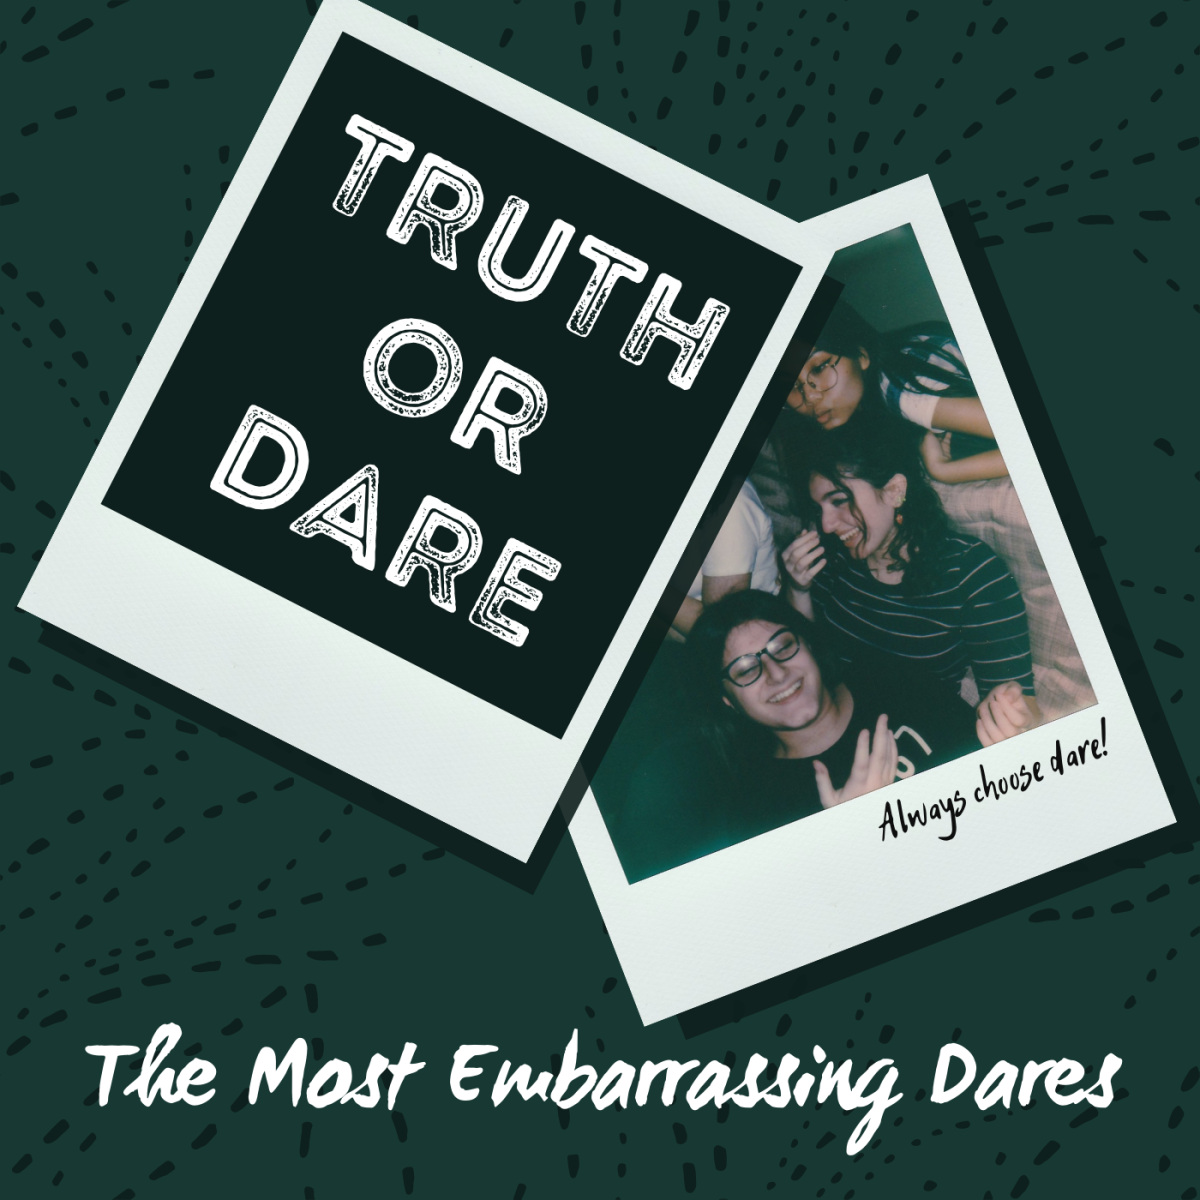 Get tons of ideas for funny dares, hard dares, crazy dares, and—above all—embarrassing dares for playing Truth or Dare with your friends!